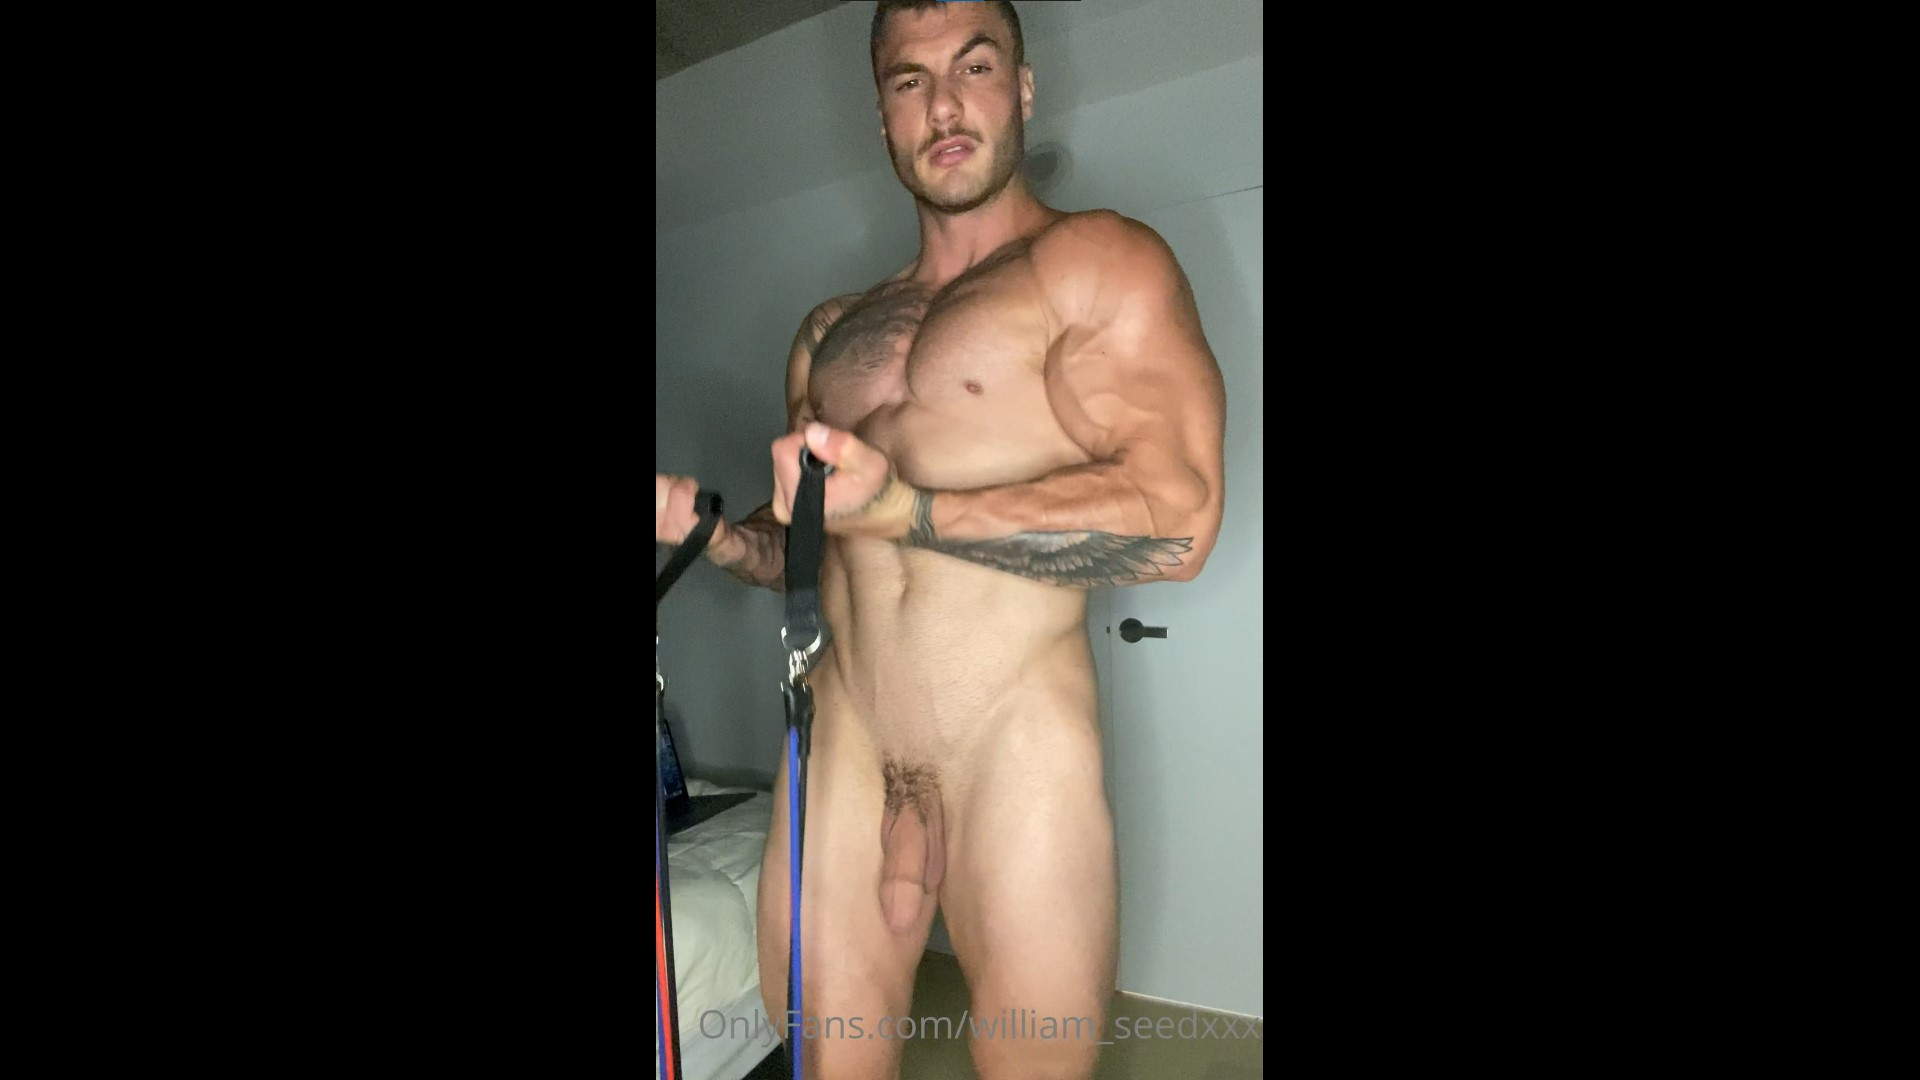 Working out nude and showing off my body - William Seed